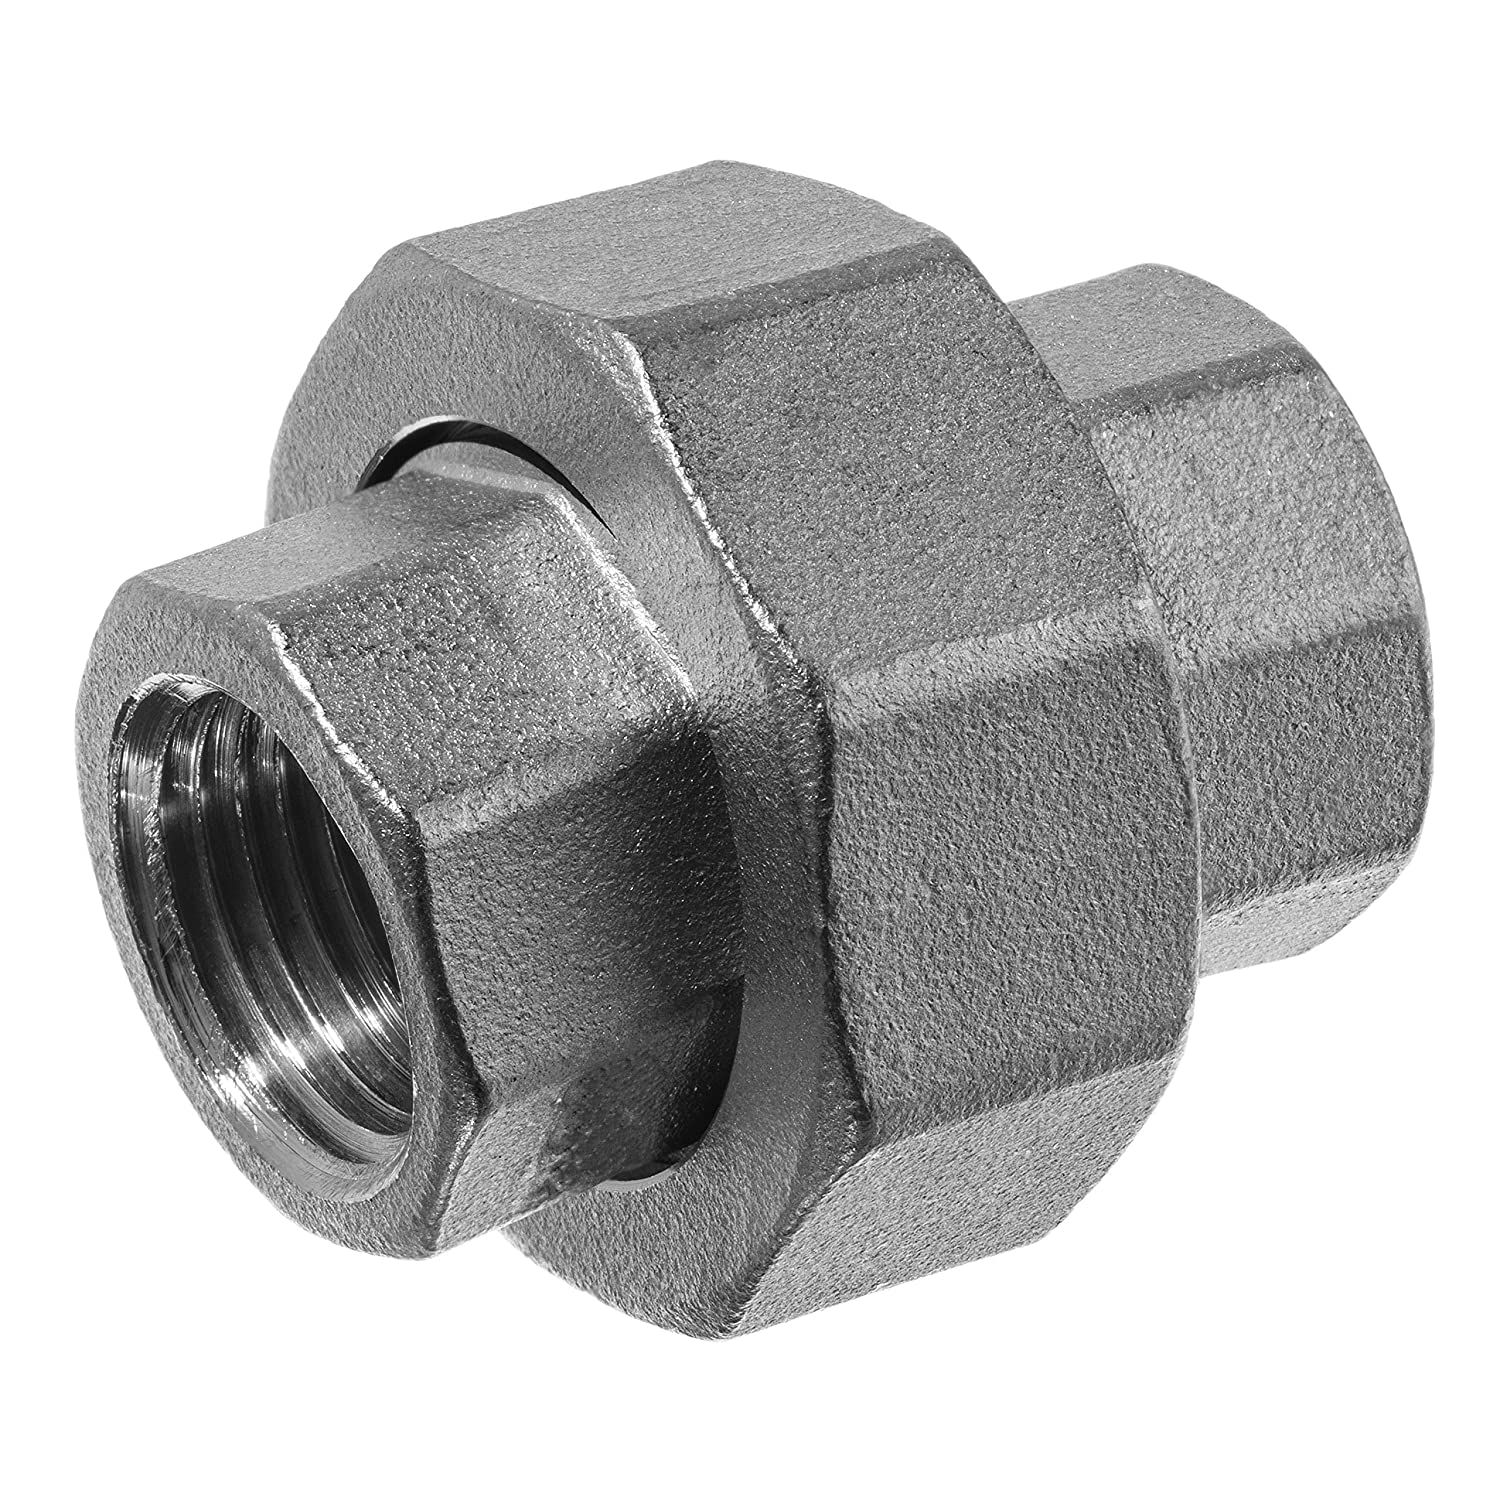 USA Cheap mail order sales Denver Mall SEALING Pipe Fitting - ZUSA-PF-7510 Stainless 316 Steel